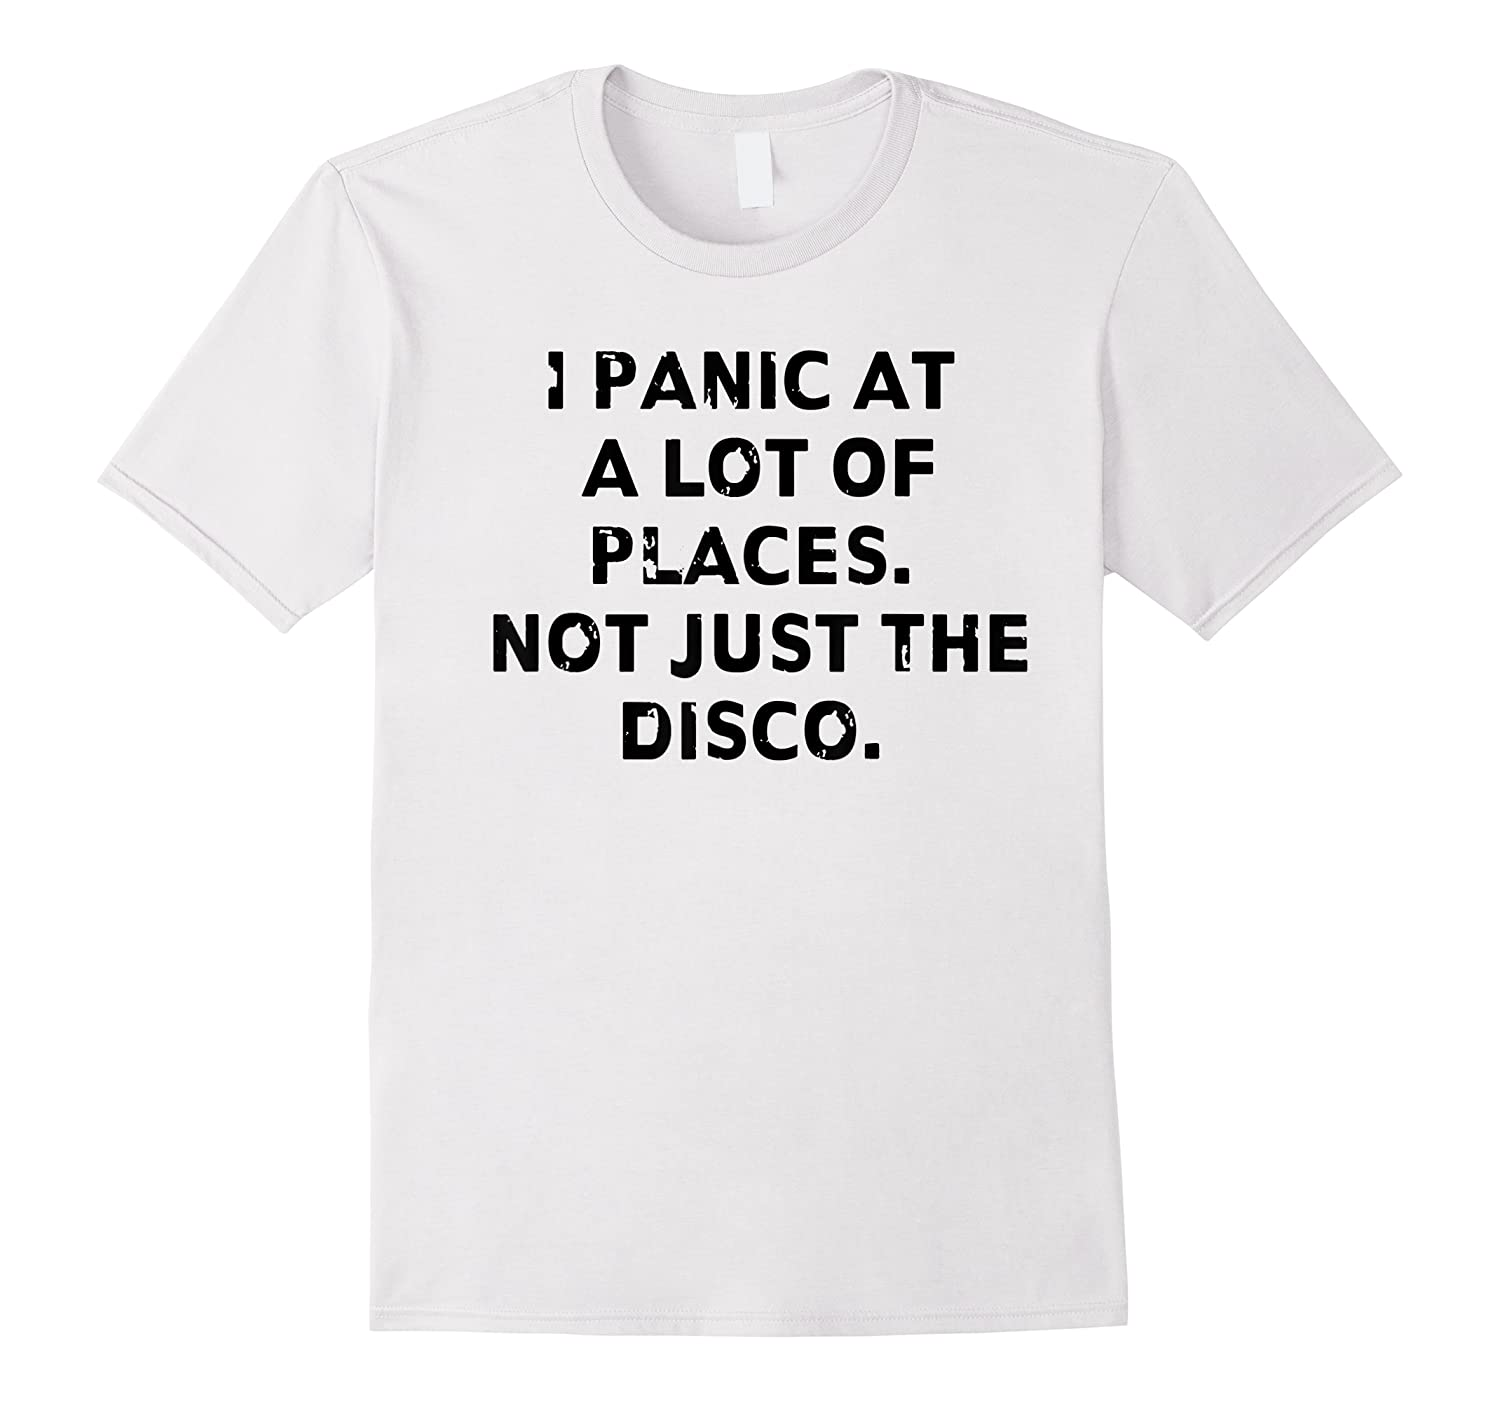 I Panic At A Lot Of Places. Not Just The Disco T-shirt